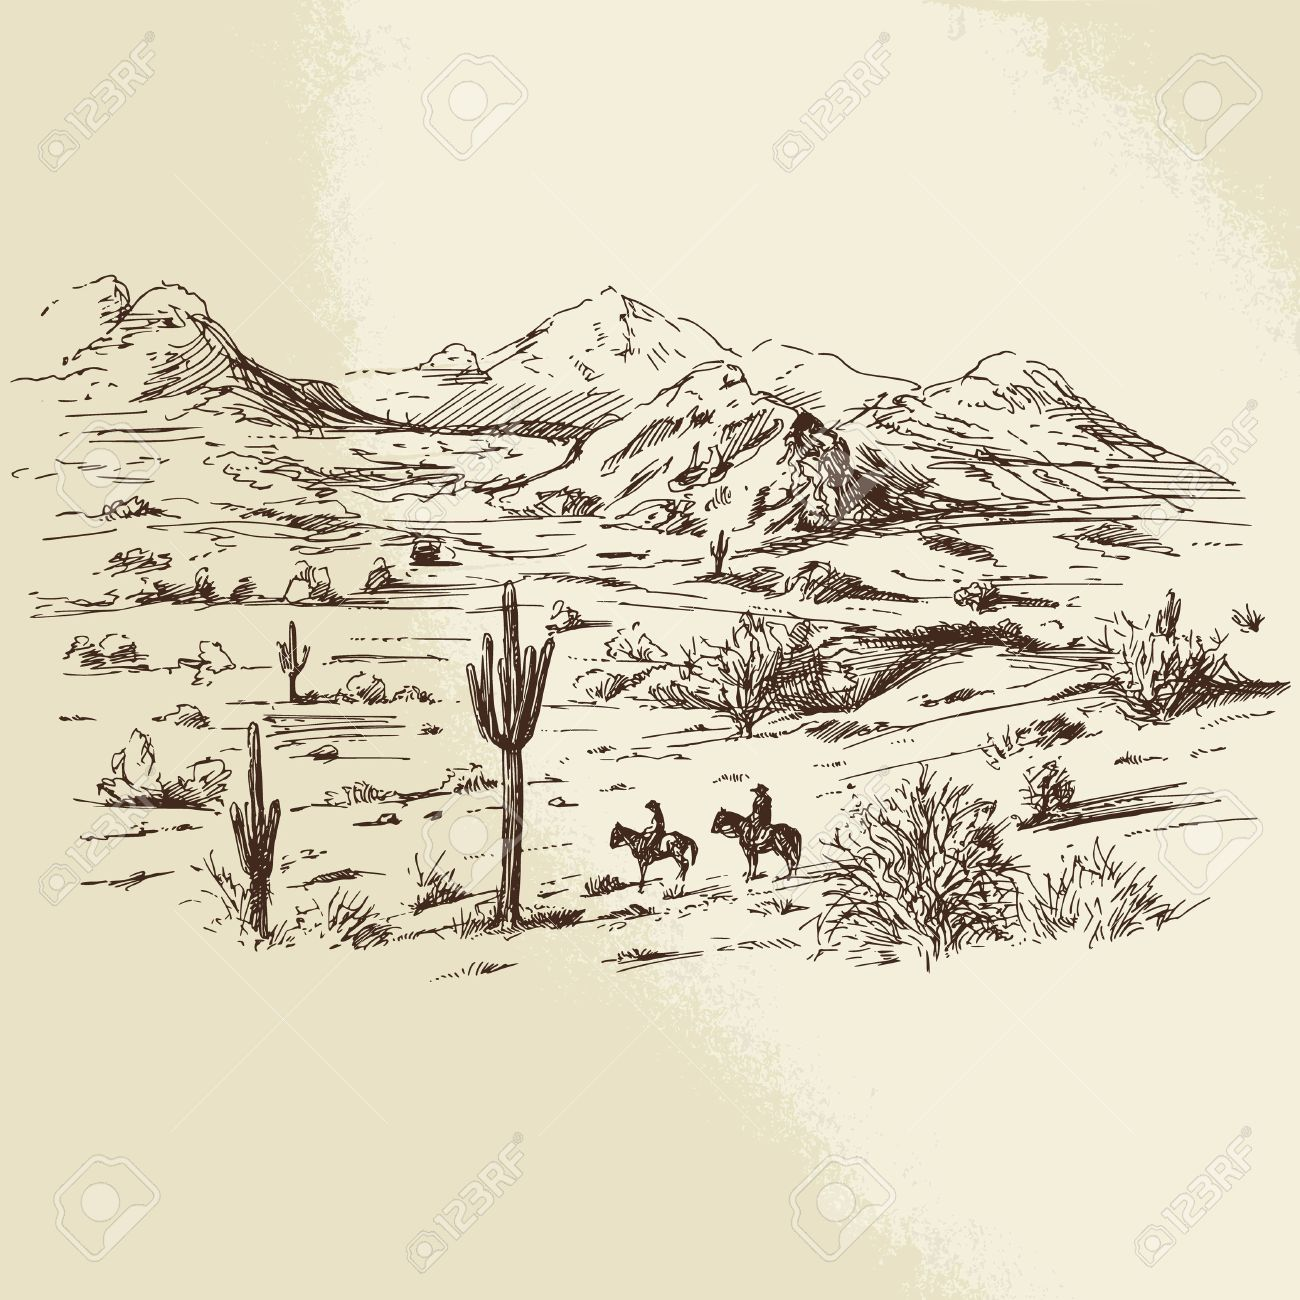 wild west - hand drawn illustration Standard-Bild - 36853312